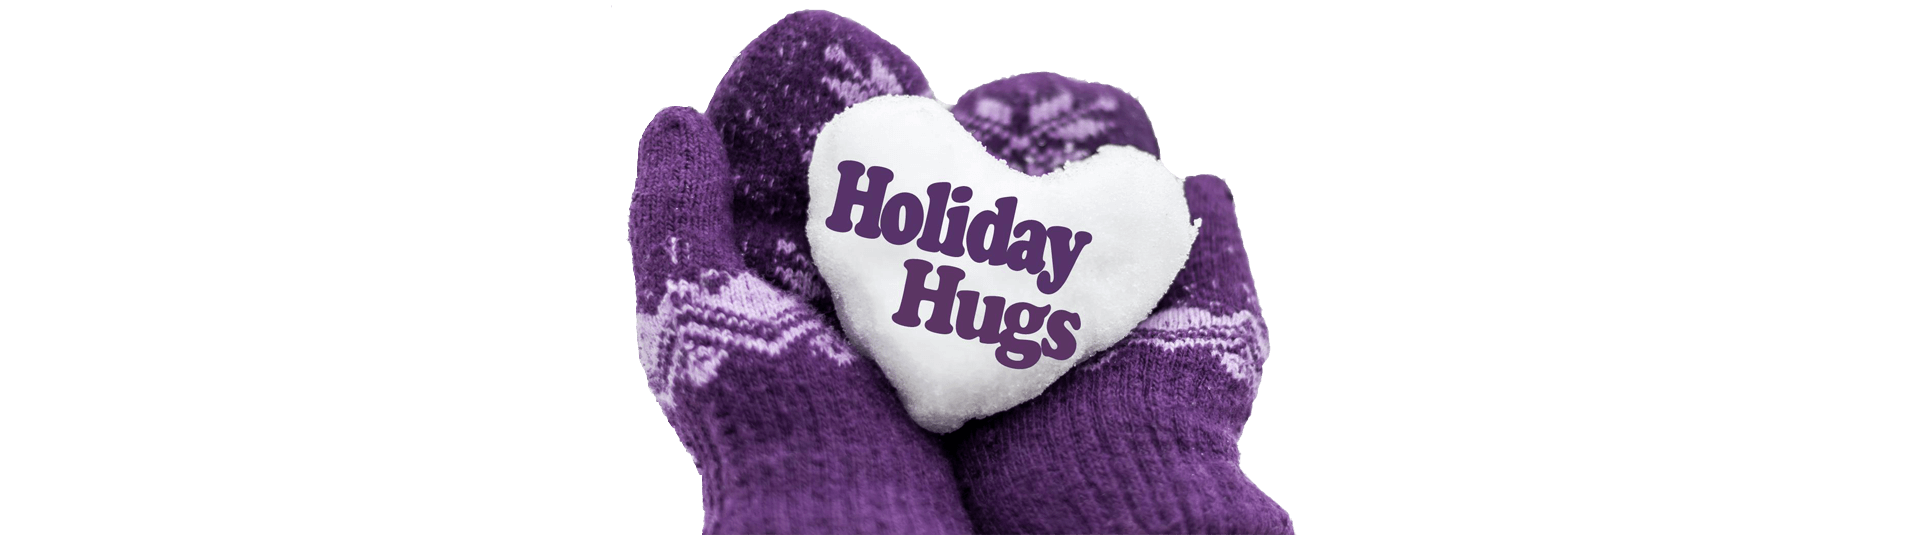 Holiday Hugs St. Andrew's Charitable Foundation